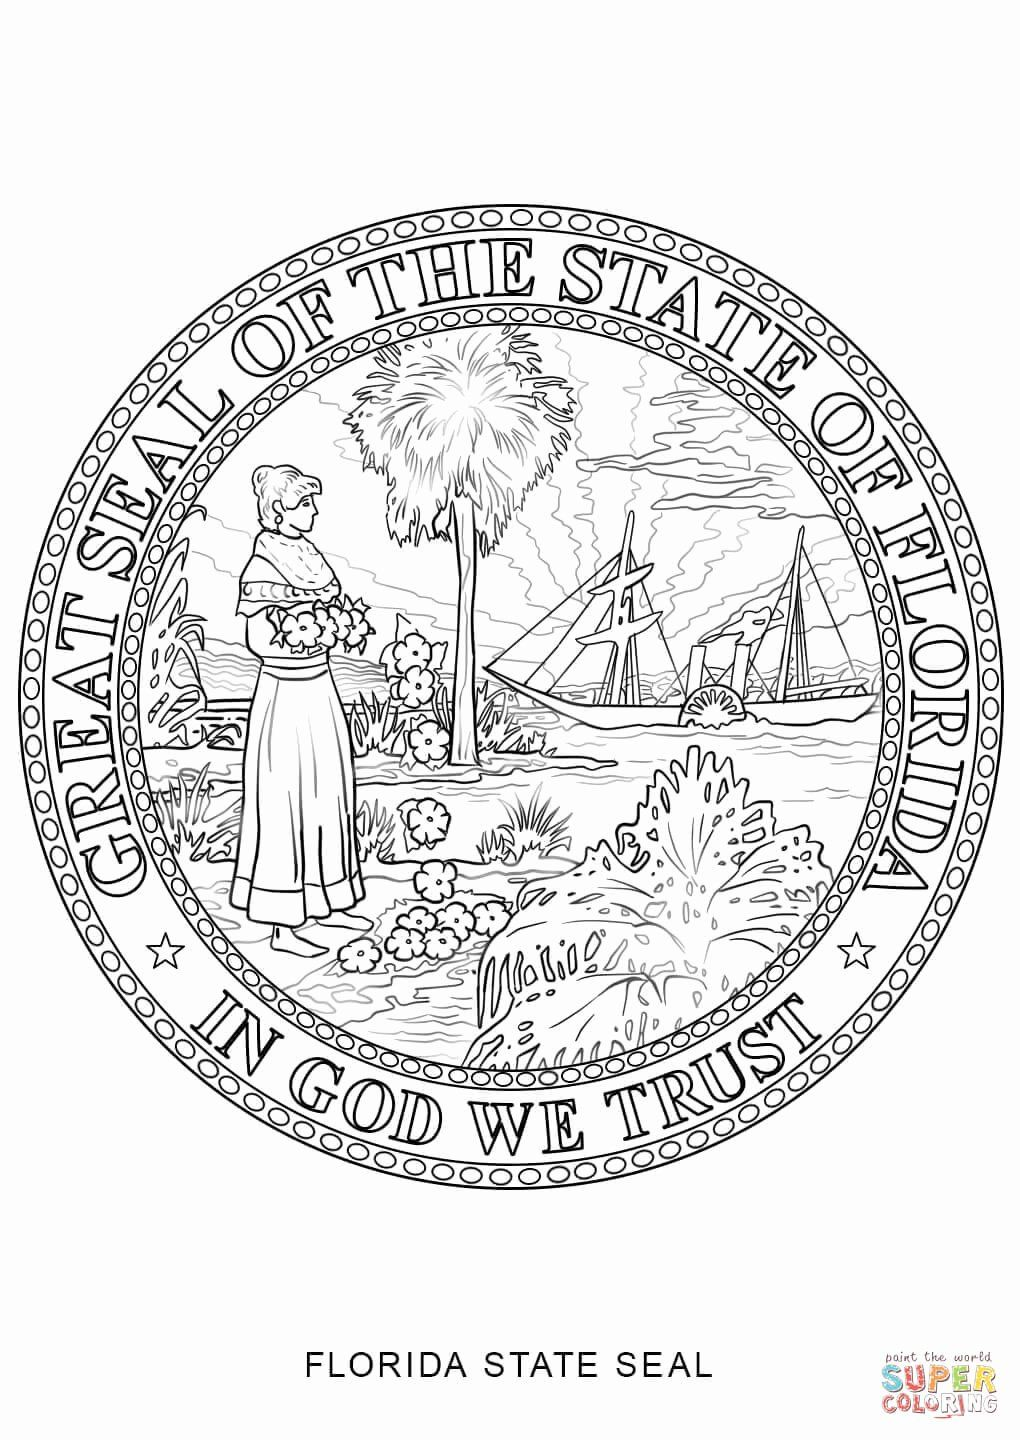 Florida Flag Coloring Page Elegant Florida State Seal Coloring Page Flag Coloring Pages Florida Flag Coloring Pages